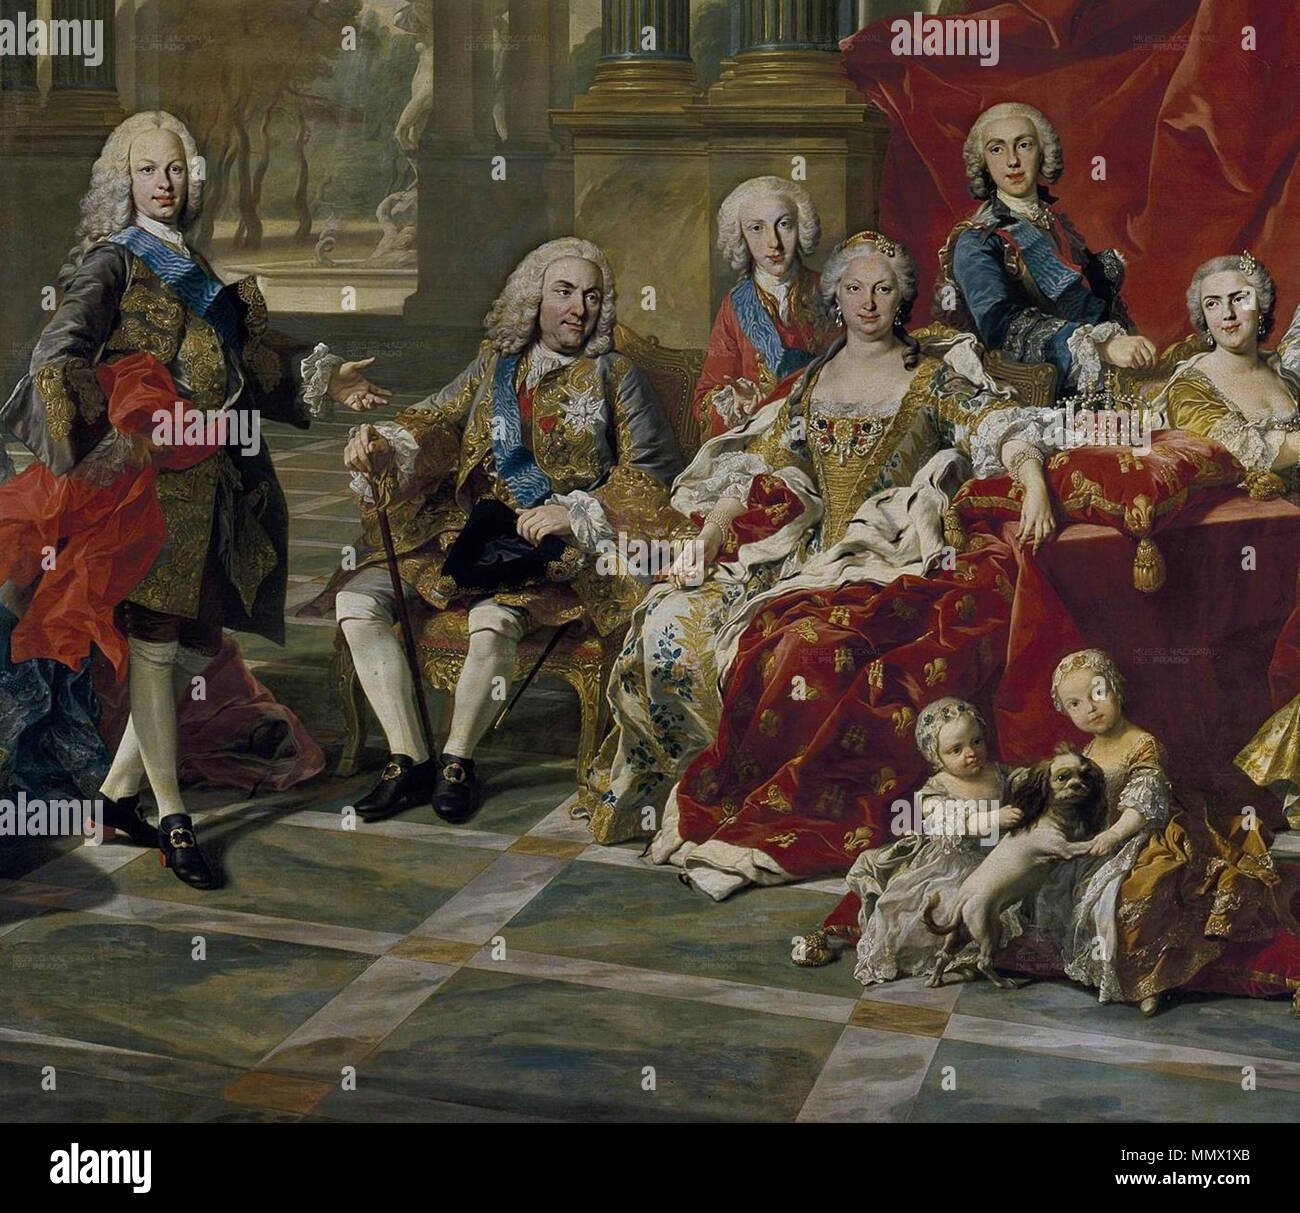 Detail of the 1743 portrait of the Family of Philip V of Spain, (Fernando  Prince ofAsturias, King Felipe, Infante Luis Antonio, Queen Elisabeth, ...